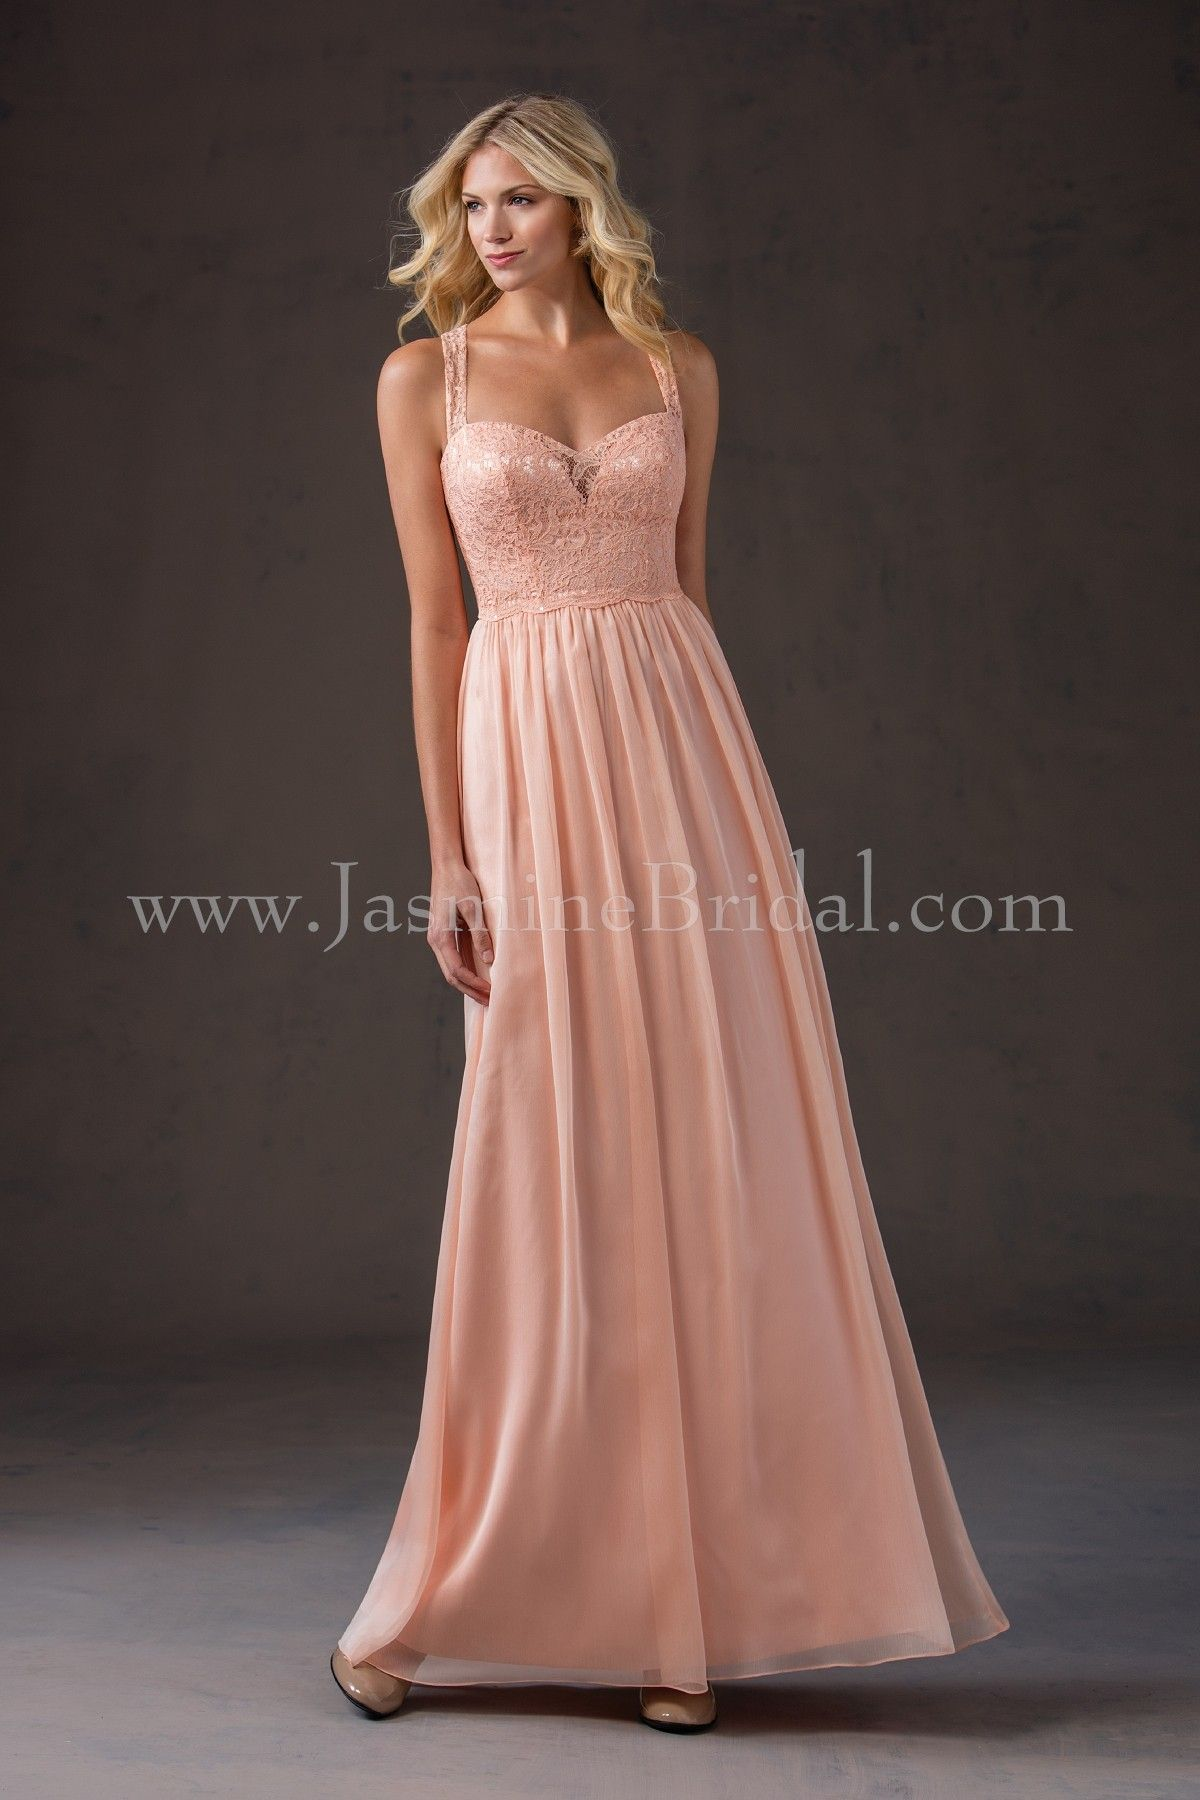 Jasmine bridal bridesmaid dress belsoie style l184061 in jasmine bridal bridesmaid dress belsoie style l184061 in dreamsicle ombrellifo Images